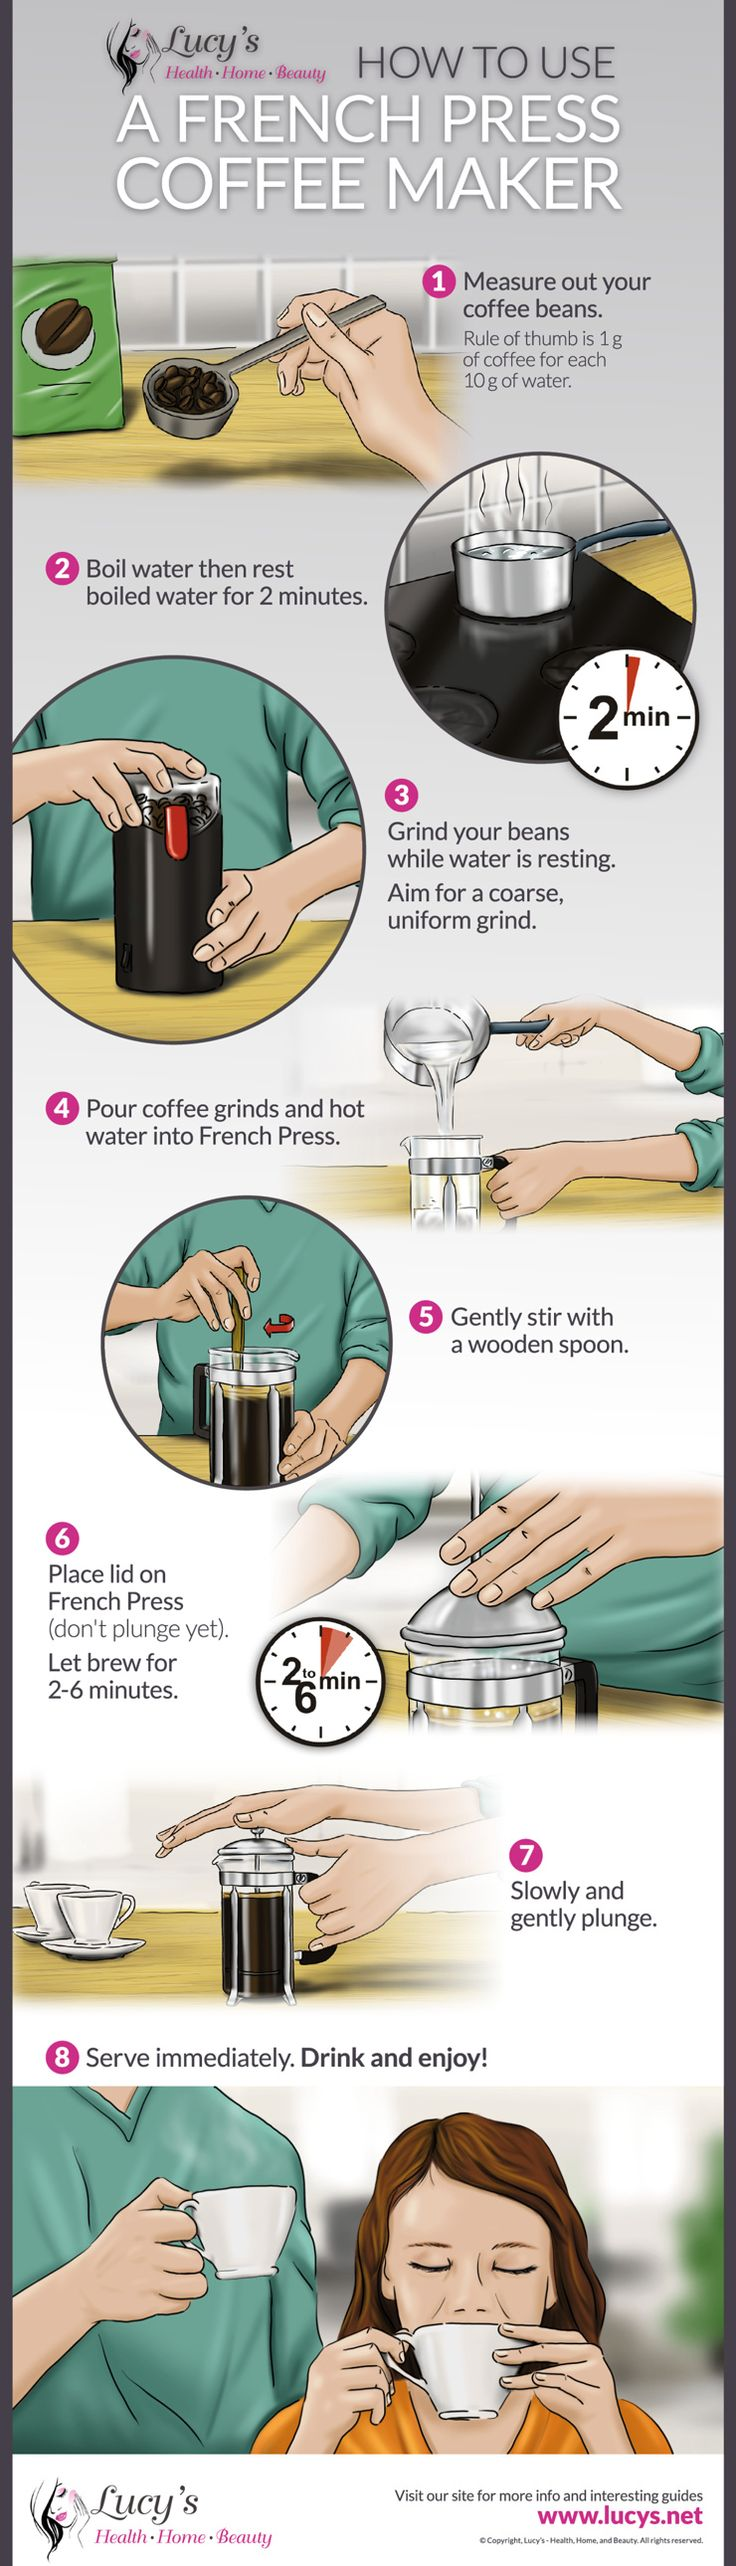 Bed bath beyond french press - Best French Press Coffee Makers Top 6 Reviewed Incl Stainless Steel